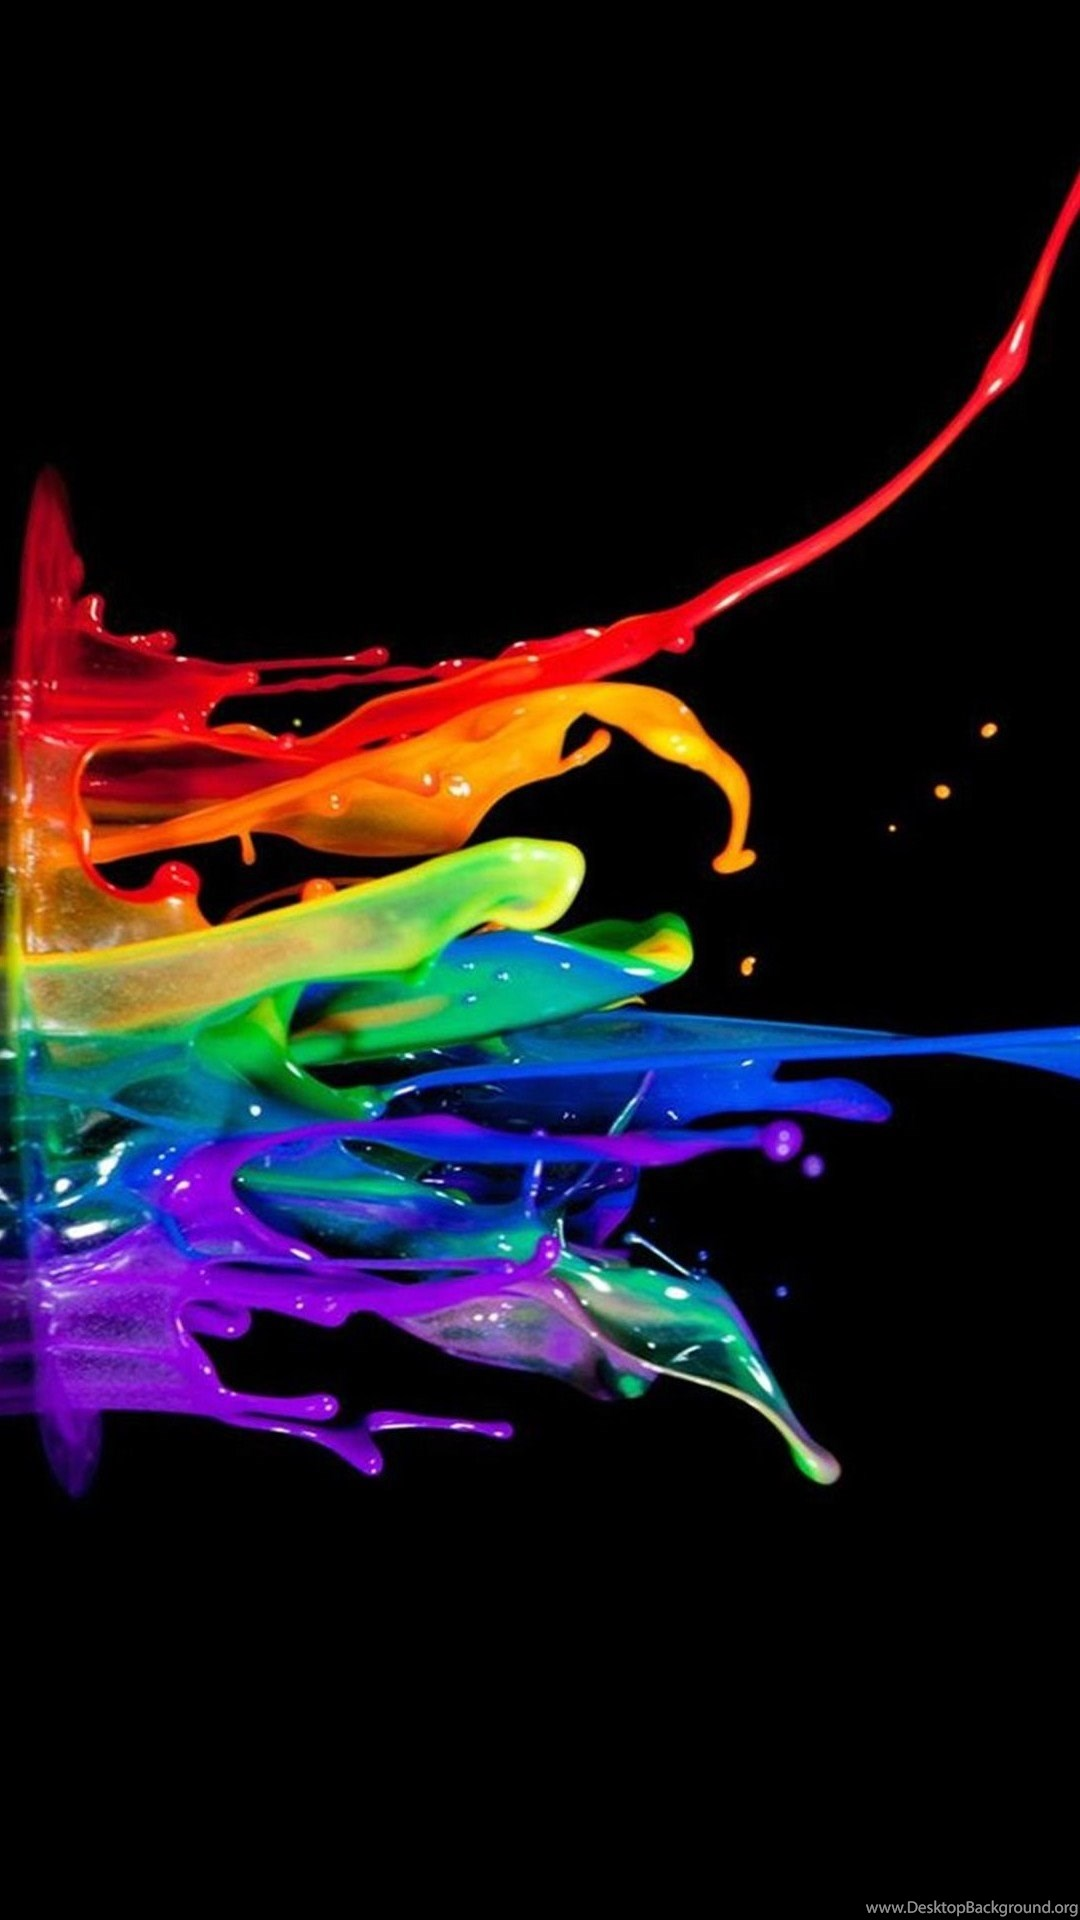 Download Abstract Samsung Galaxy Note 3 Wallpapers Part 3 Desktop Background